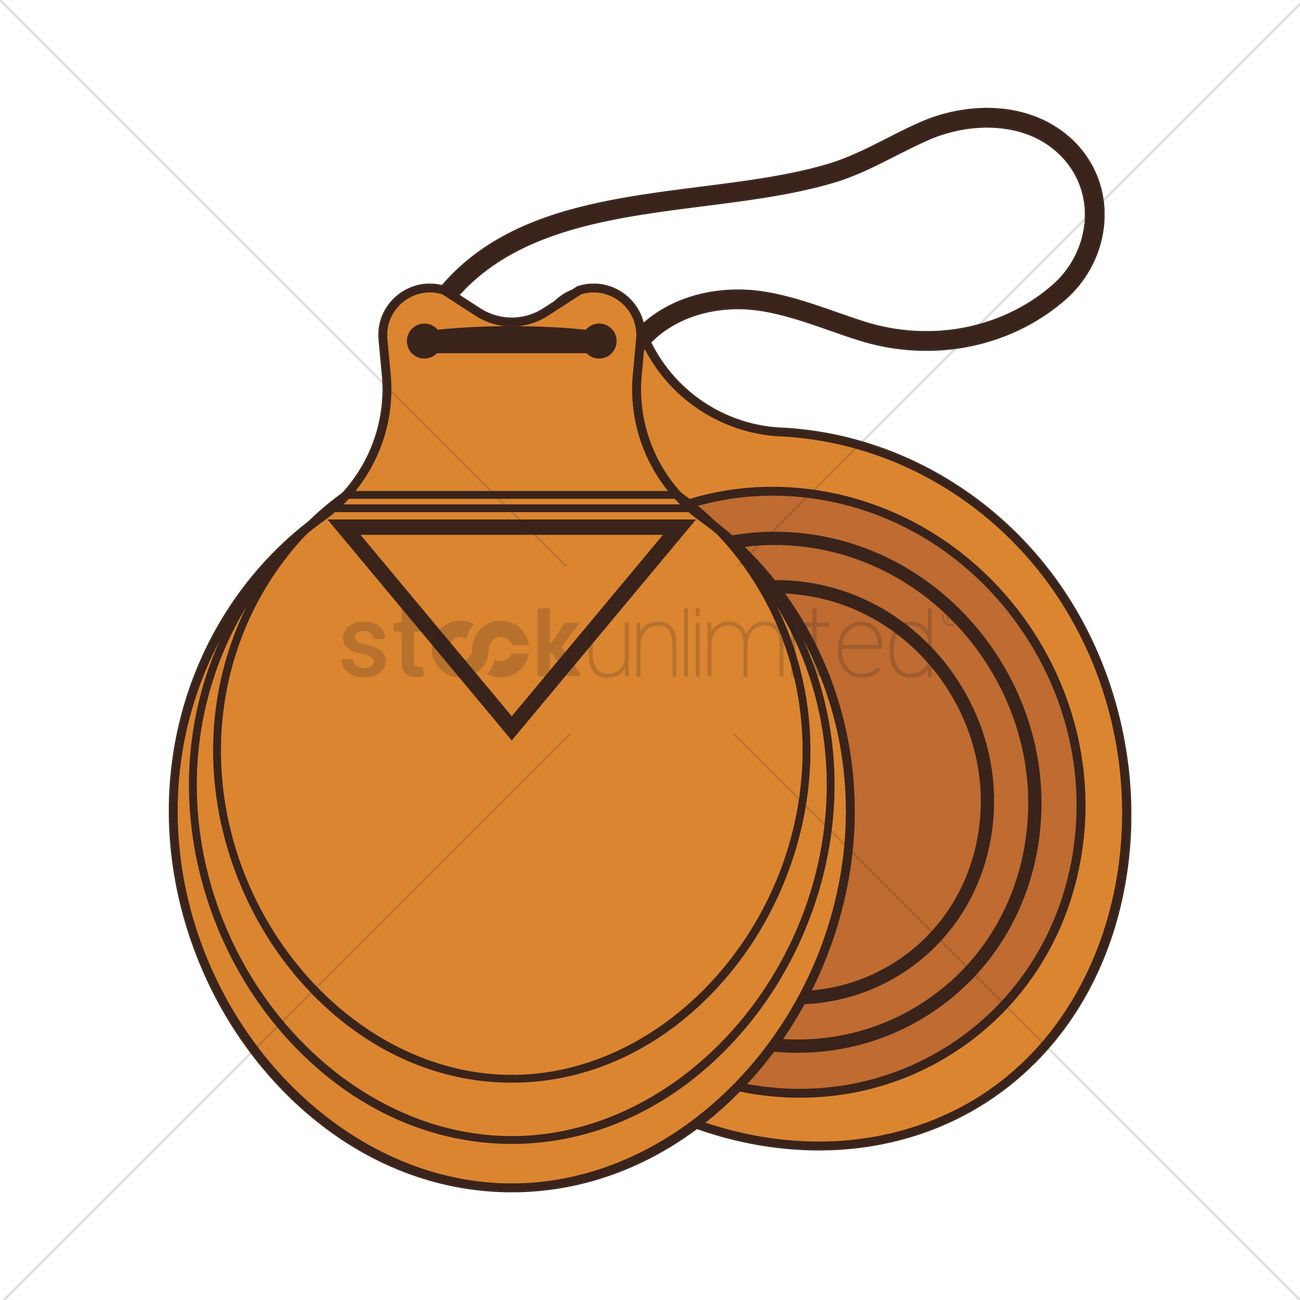 castanets vector image 1564869 stockunlimited